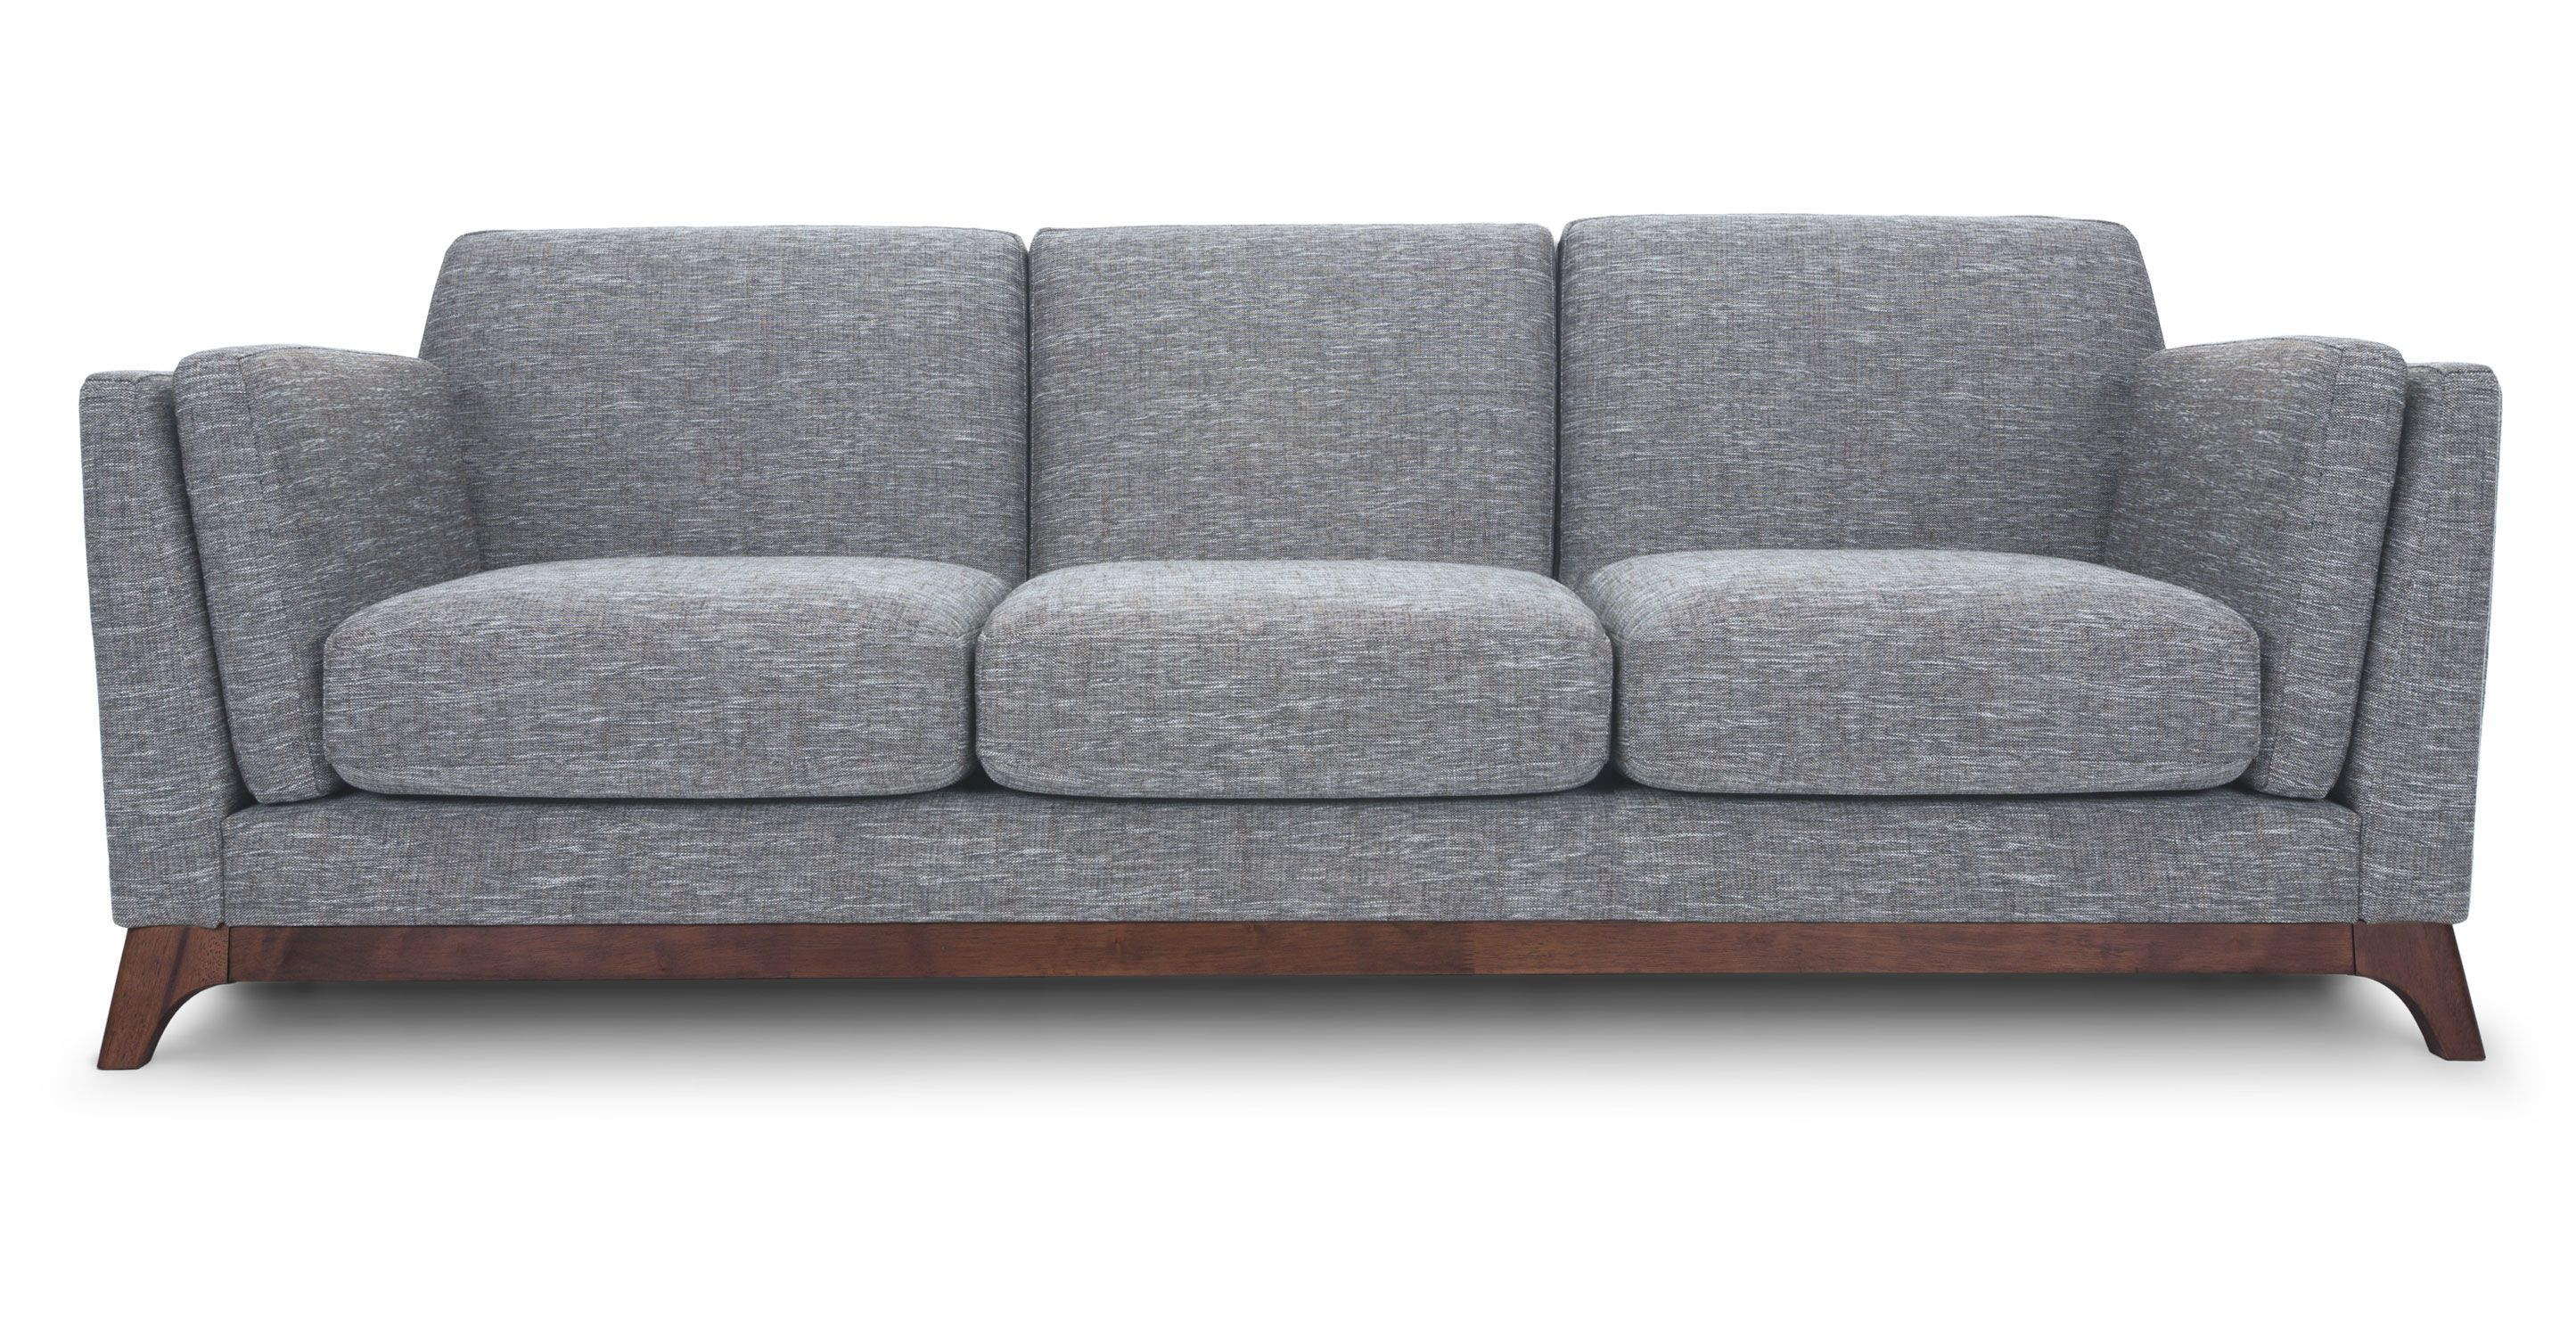 Sofas Couches Gray Sofa 3 Seater With Solid Wood Legs Article Ceni